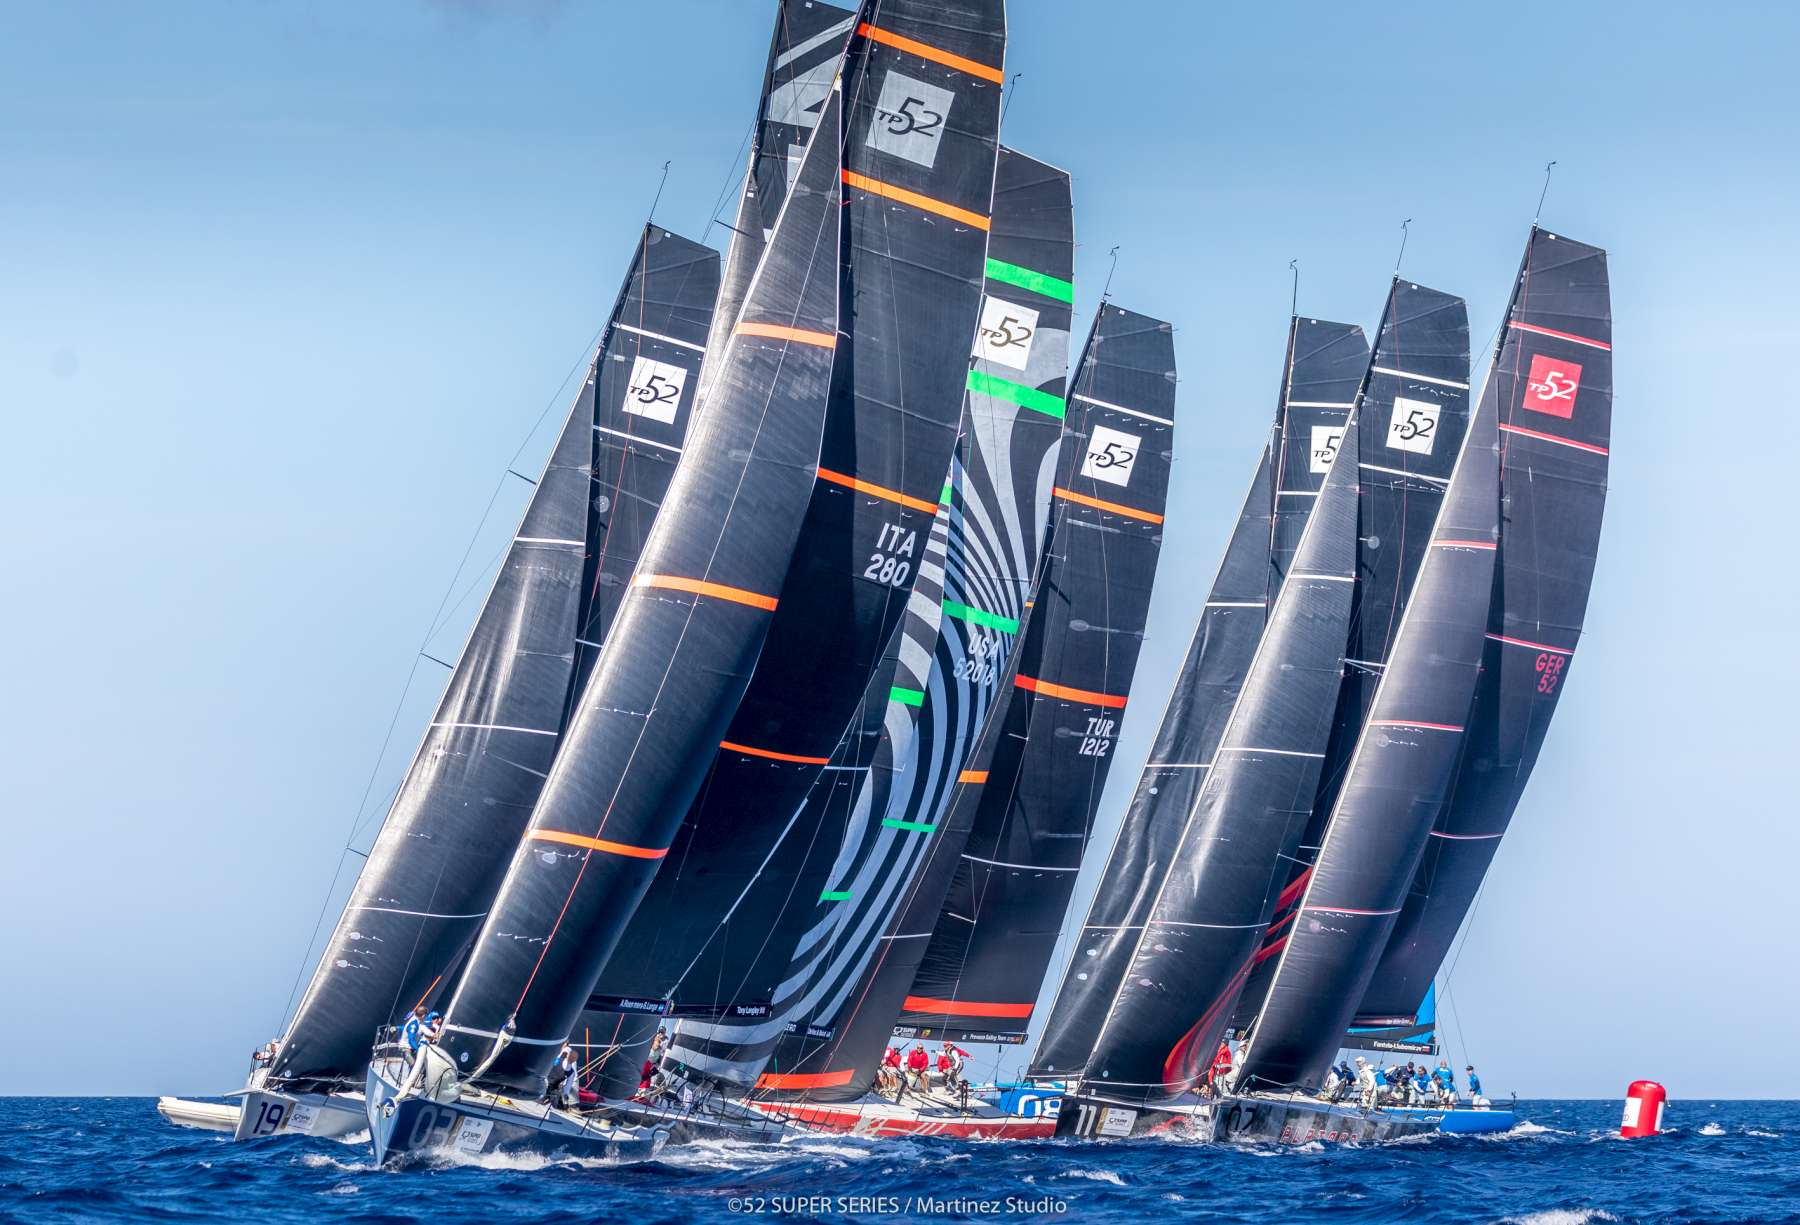 AUDI 52 SUPER SERIES SAILING WEEK - FOTO DAY 4 ONLINE - NEWS - Yacht Club Costa Smeralda